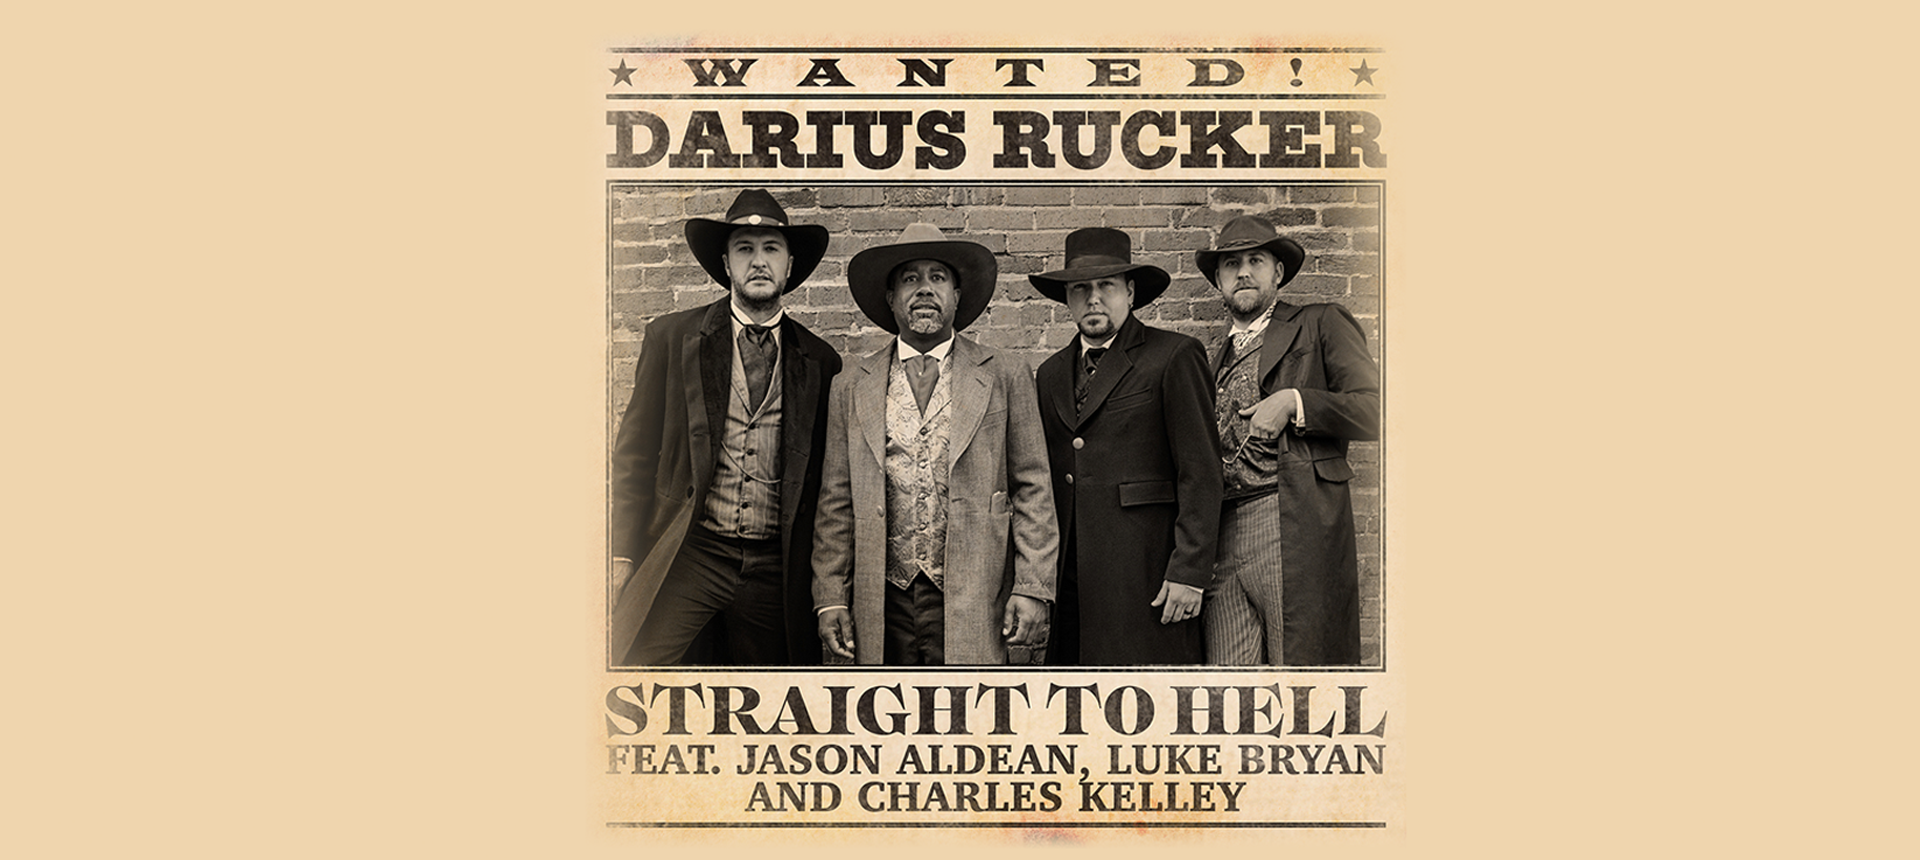 The Official Website Darius Rucker